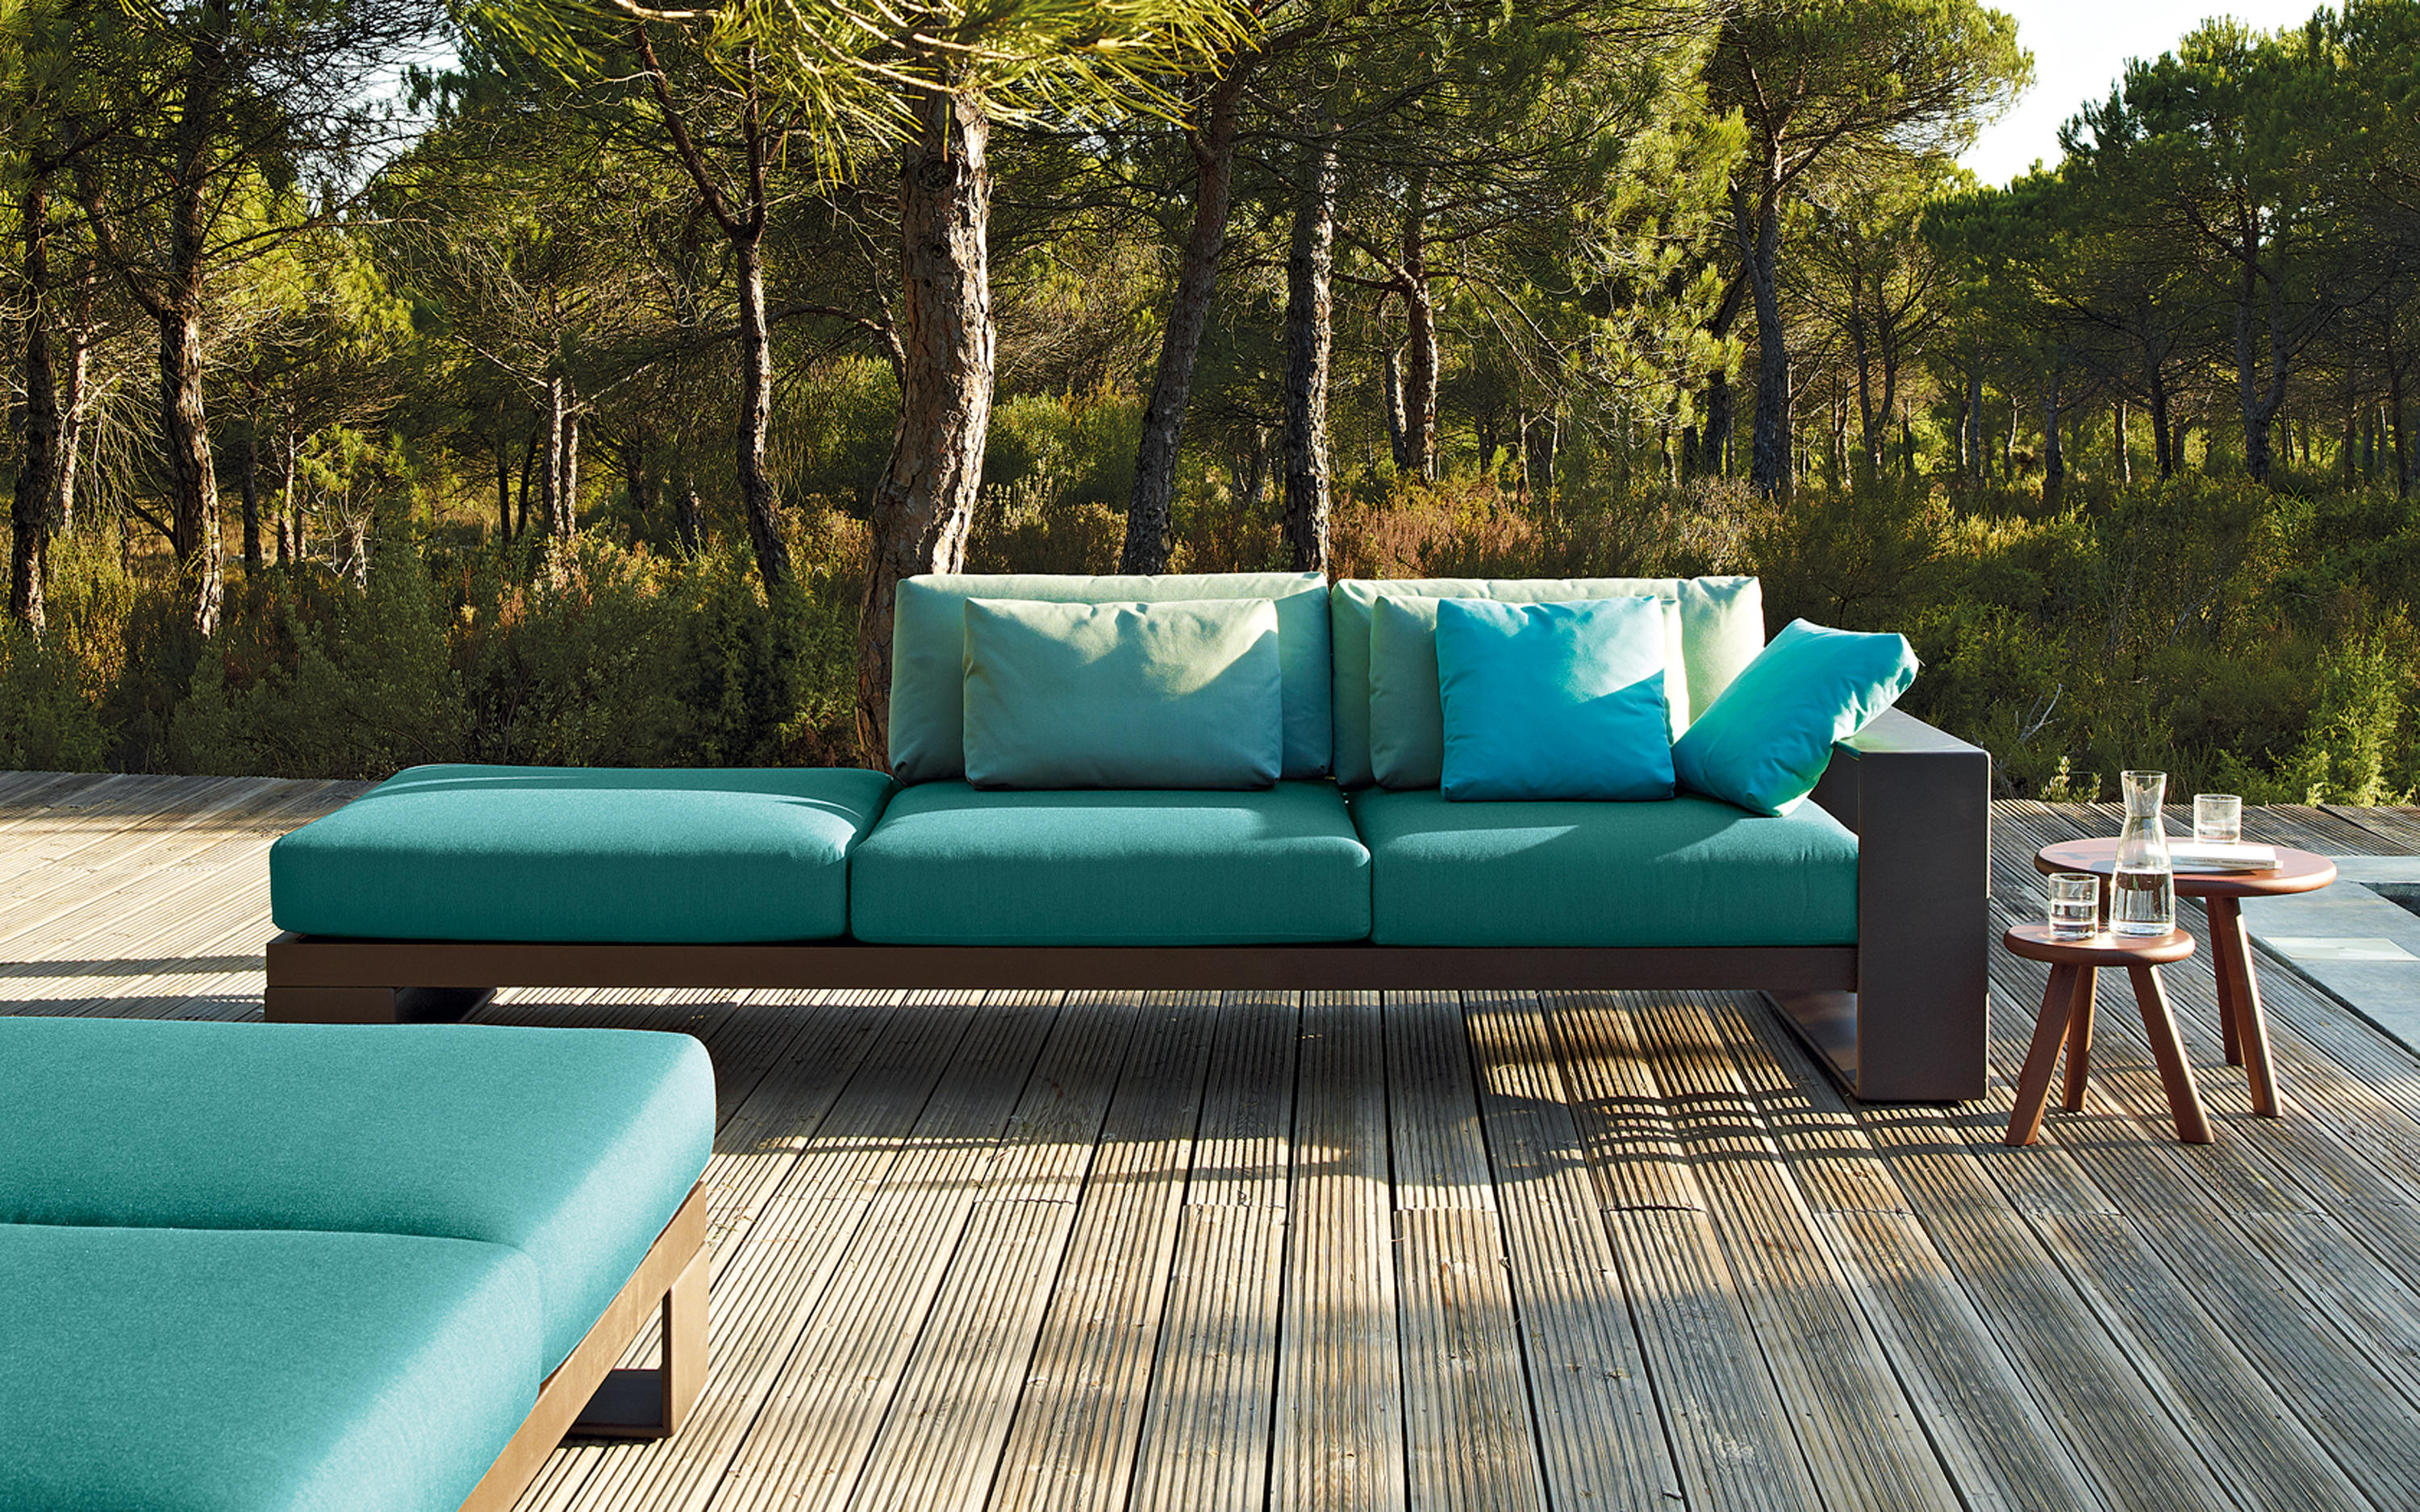 Gardening Group: LANDSCAPE ALU - Sun Loungers From Andreu World